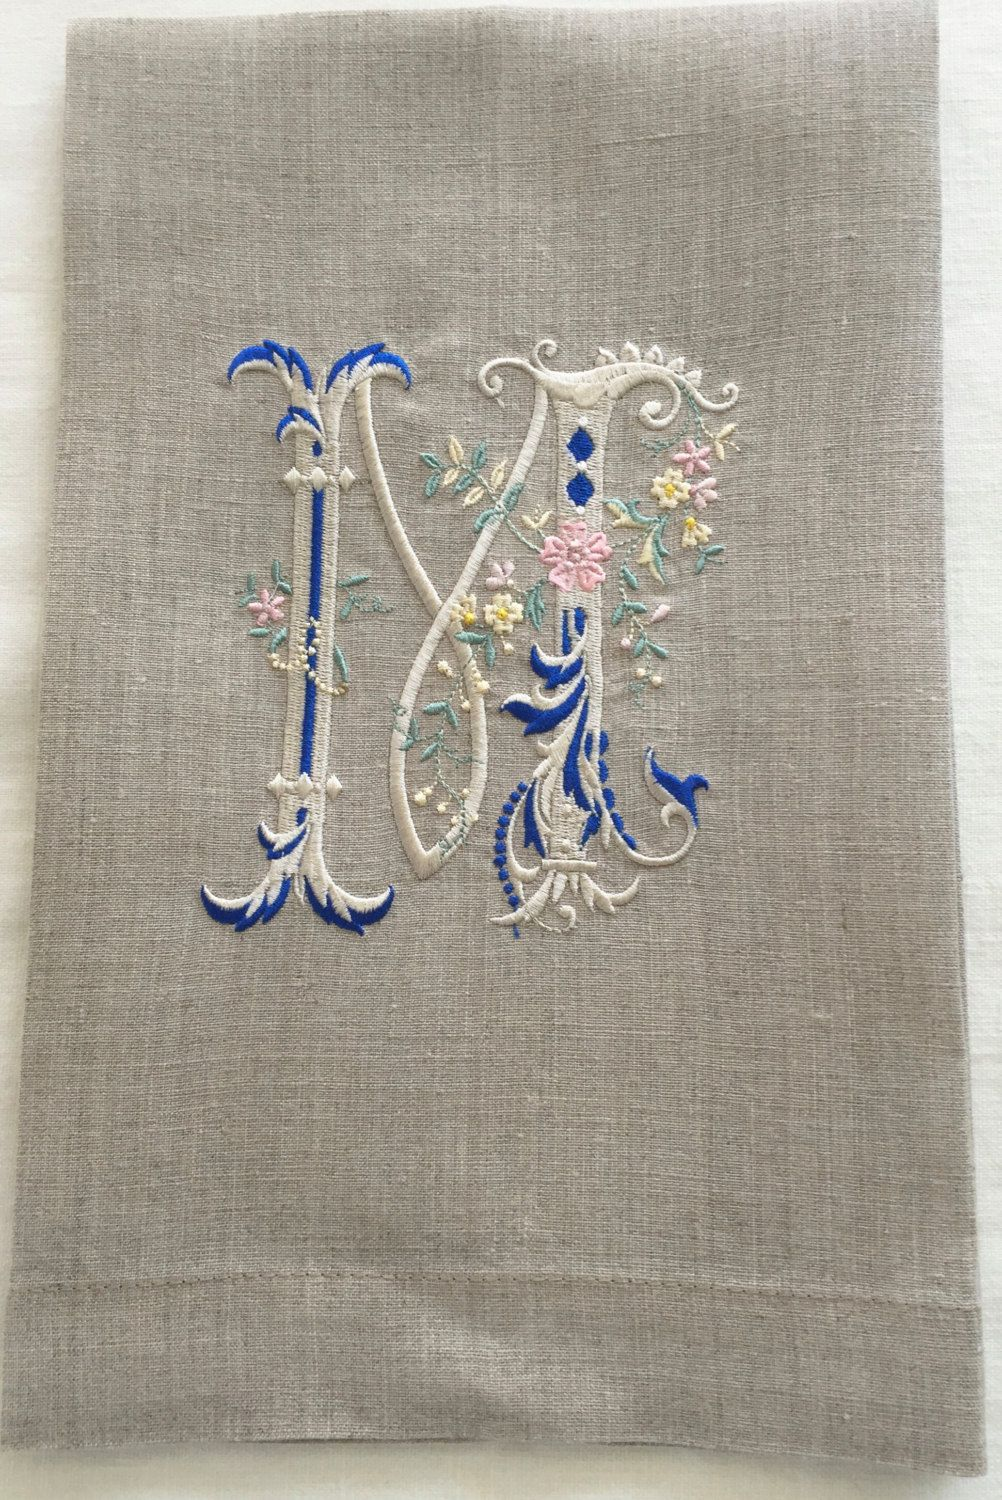 34*76cm Embroidered Cotton Terry Hand Towels Set,Home Decorative Cheap  Quality Face Bathroom Hand Towels Set,Toallas Mano High Quality Set Dental  China ...